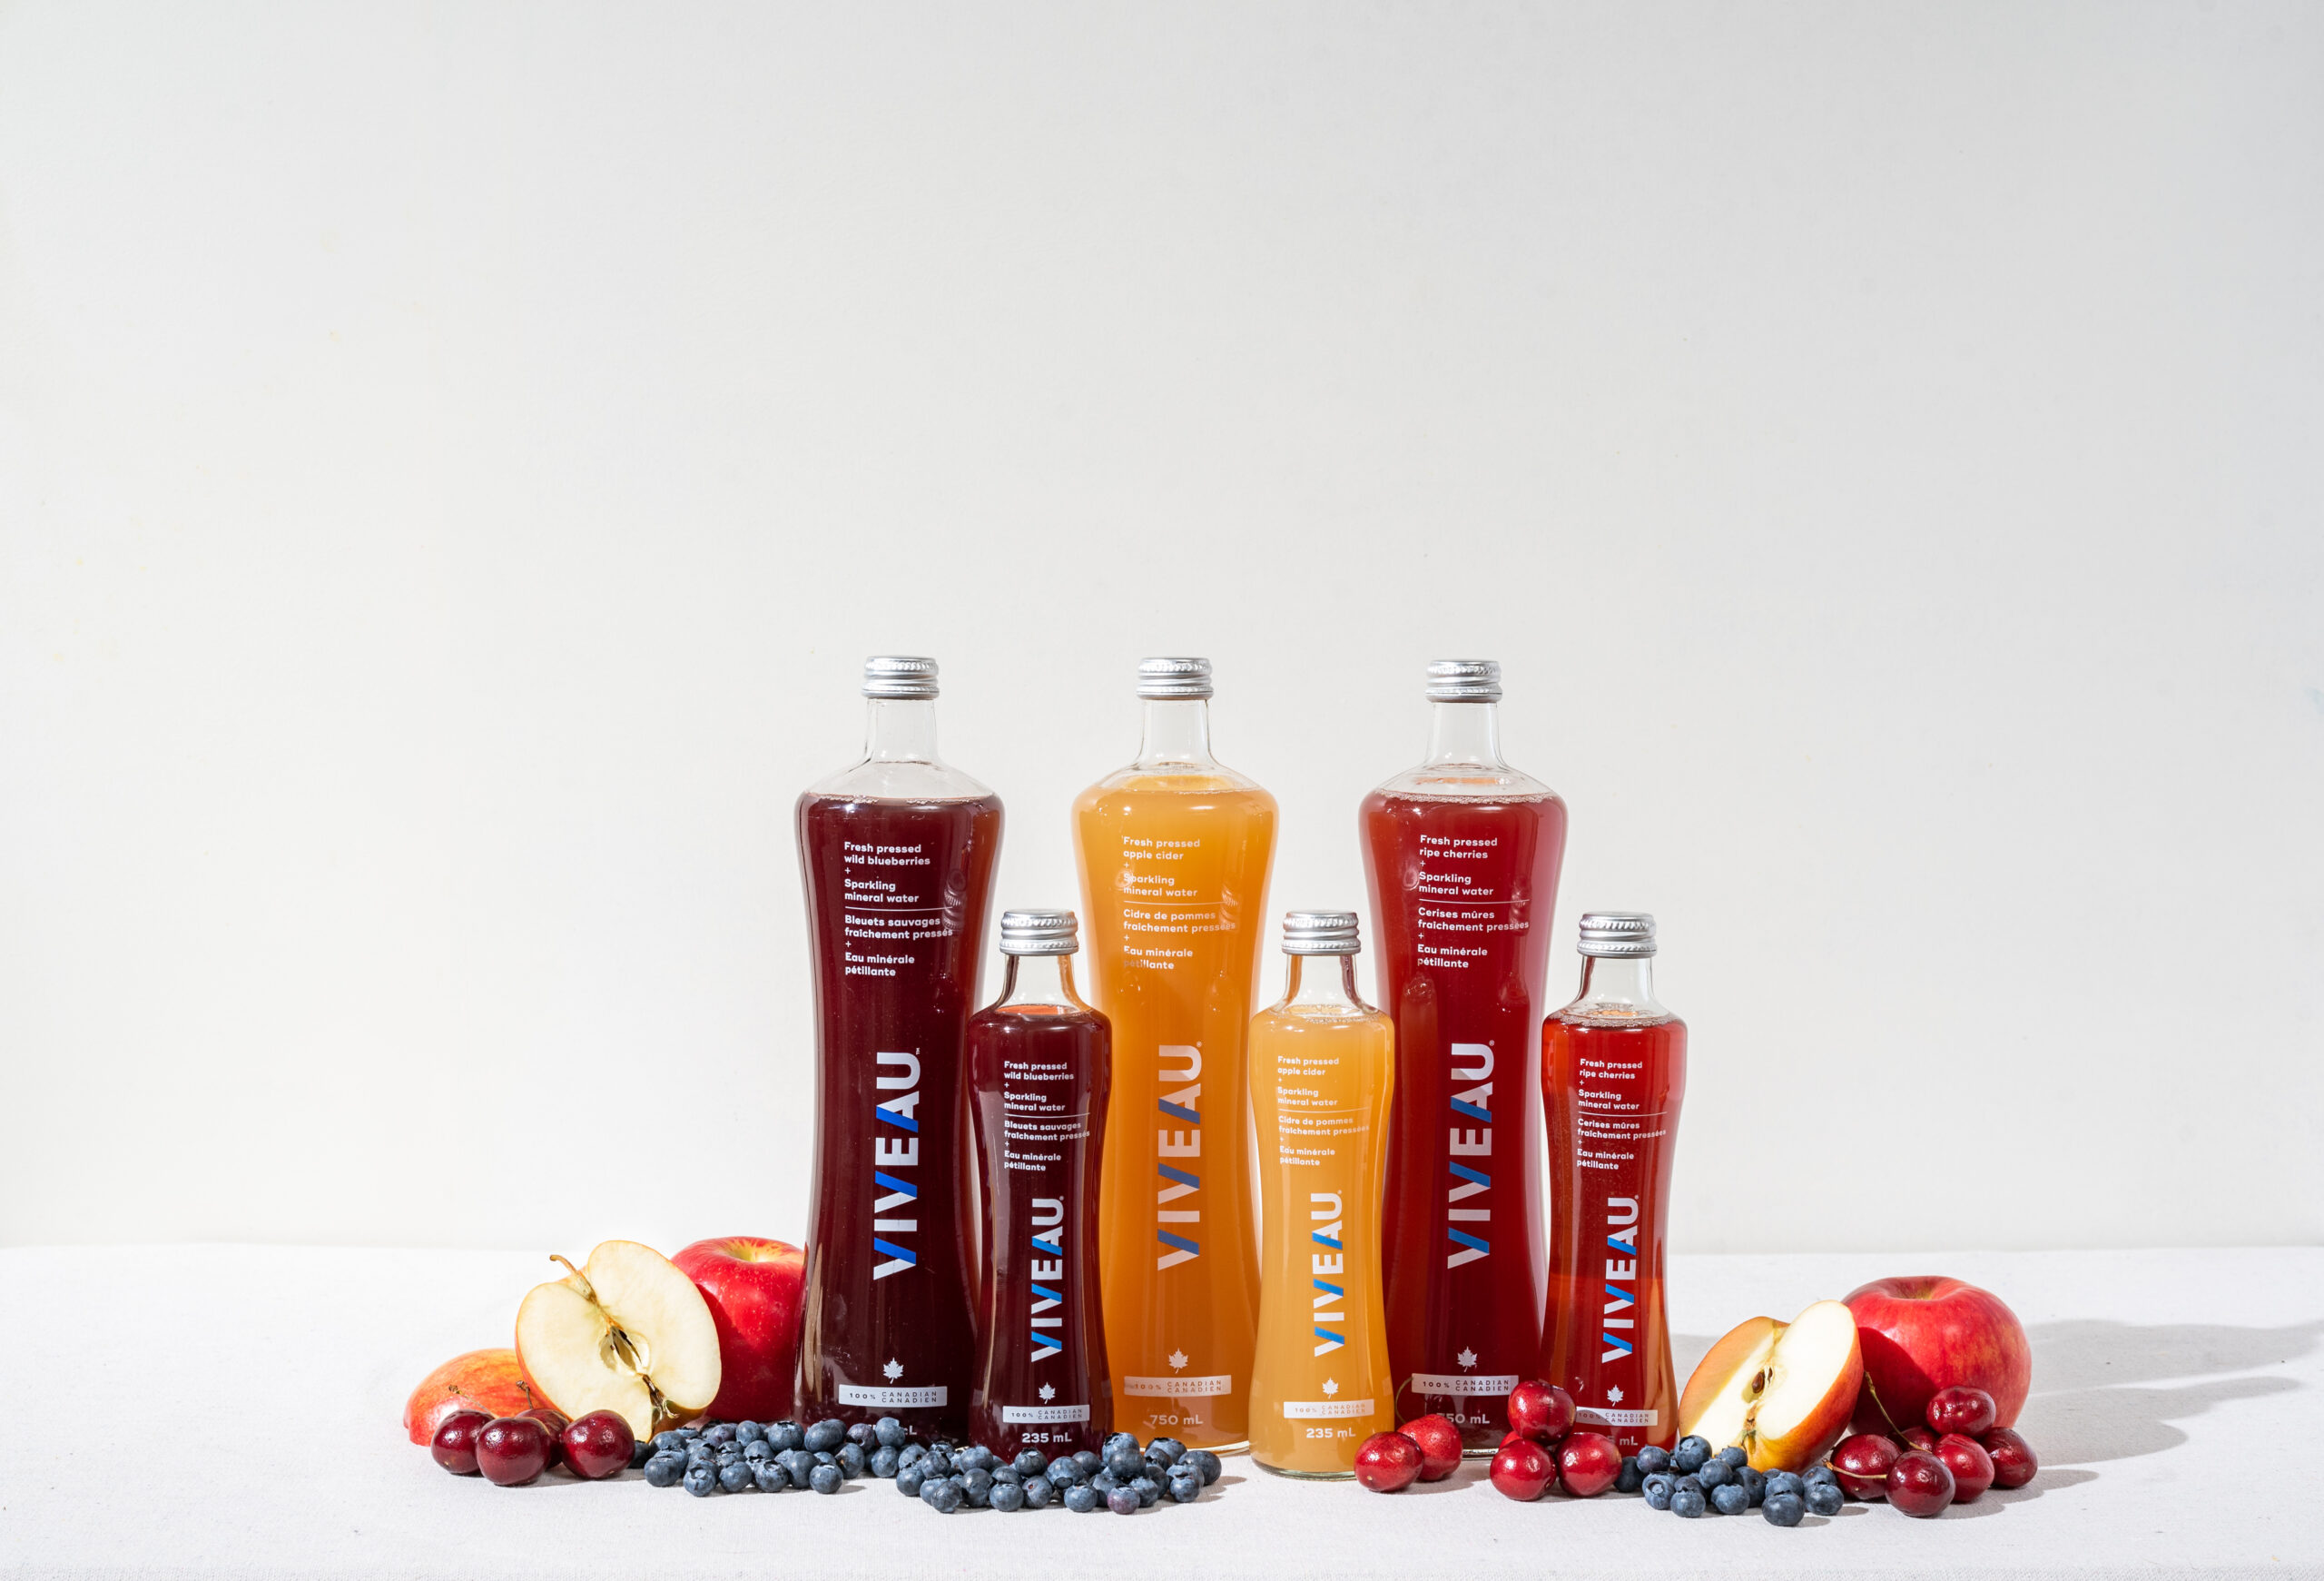 New mineral water flavours from Canadian company Viveau | Food In Canada